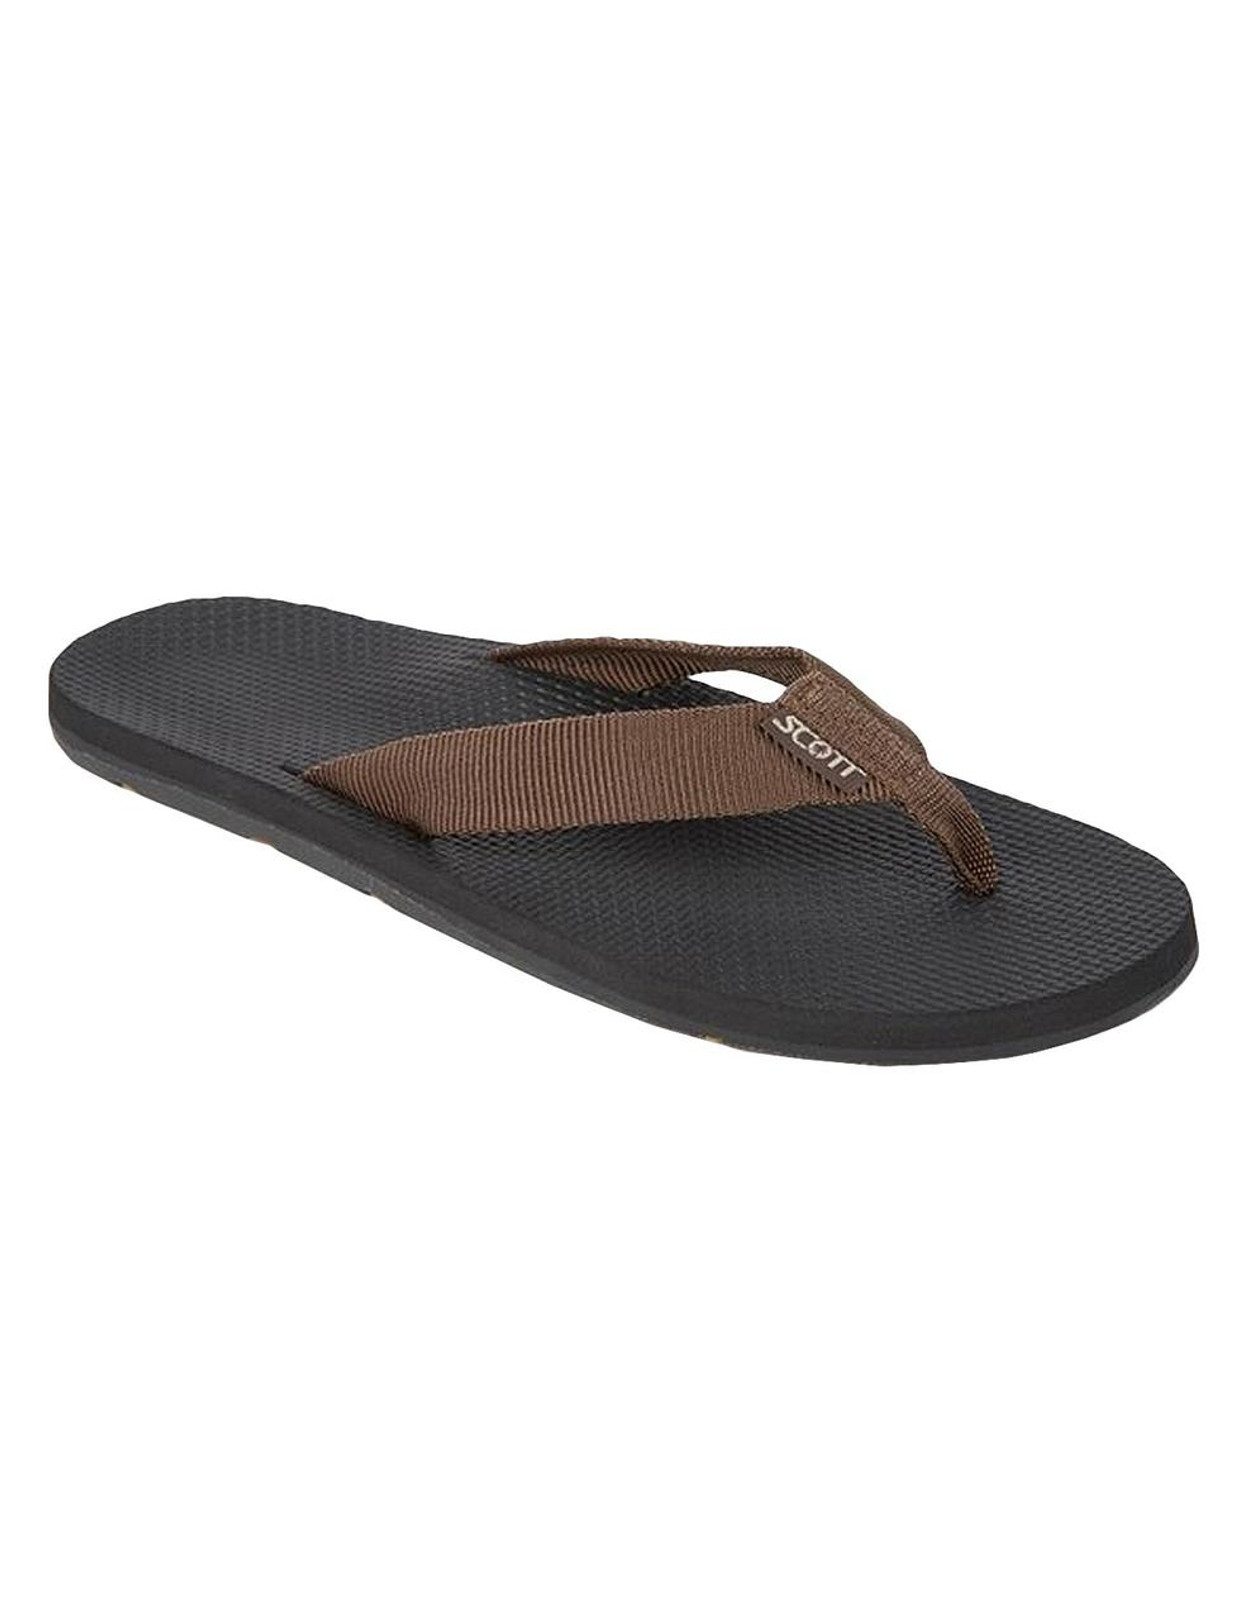 30b4a3e35b91b Men s Brown Tropical Sandals Scott Hawaii Makaha All rubber outsole with  molded arch Textured Rubalon insole